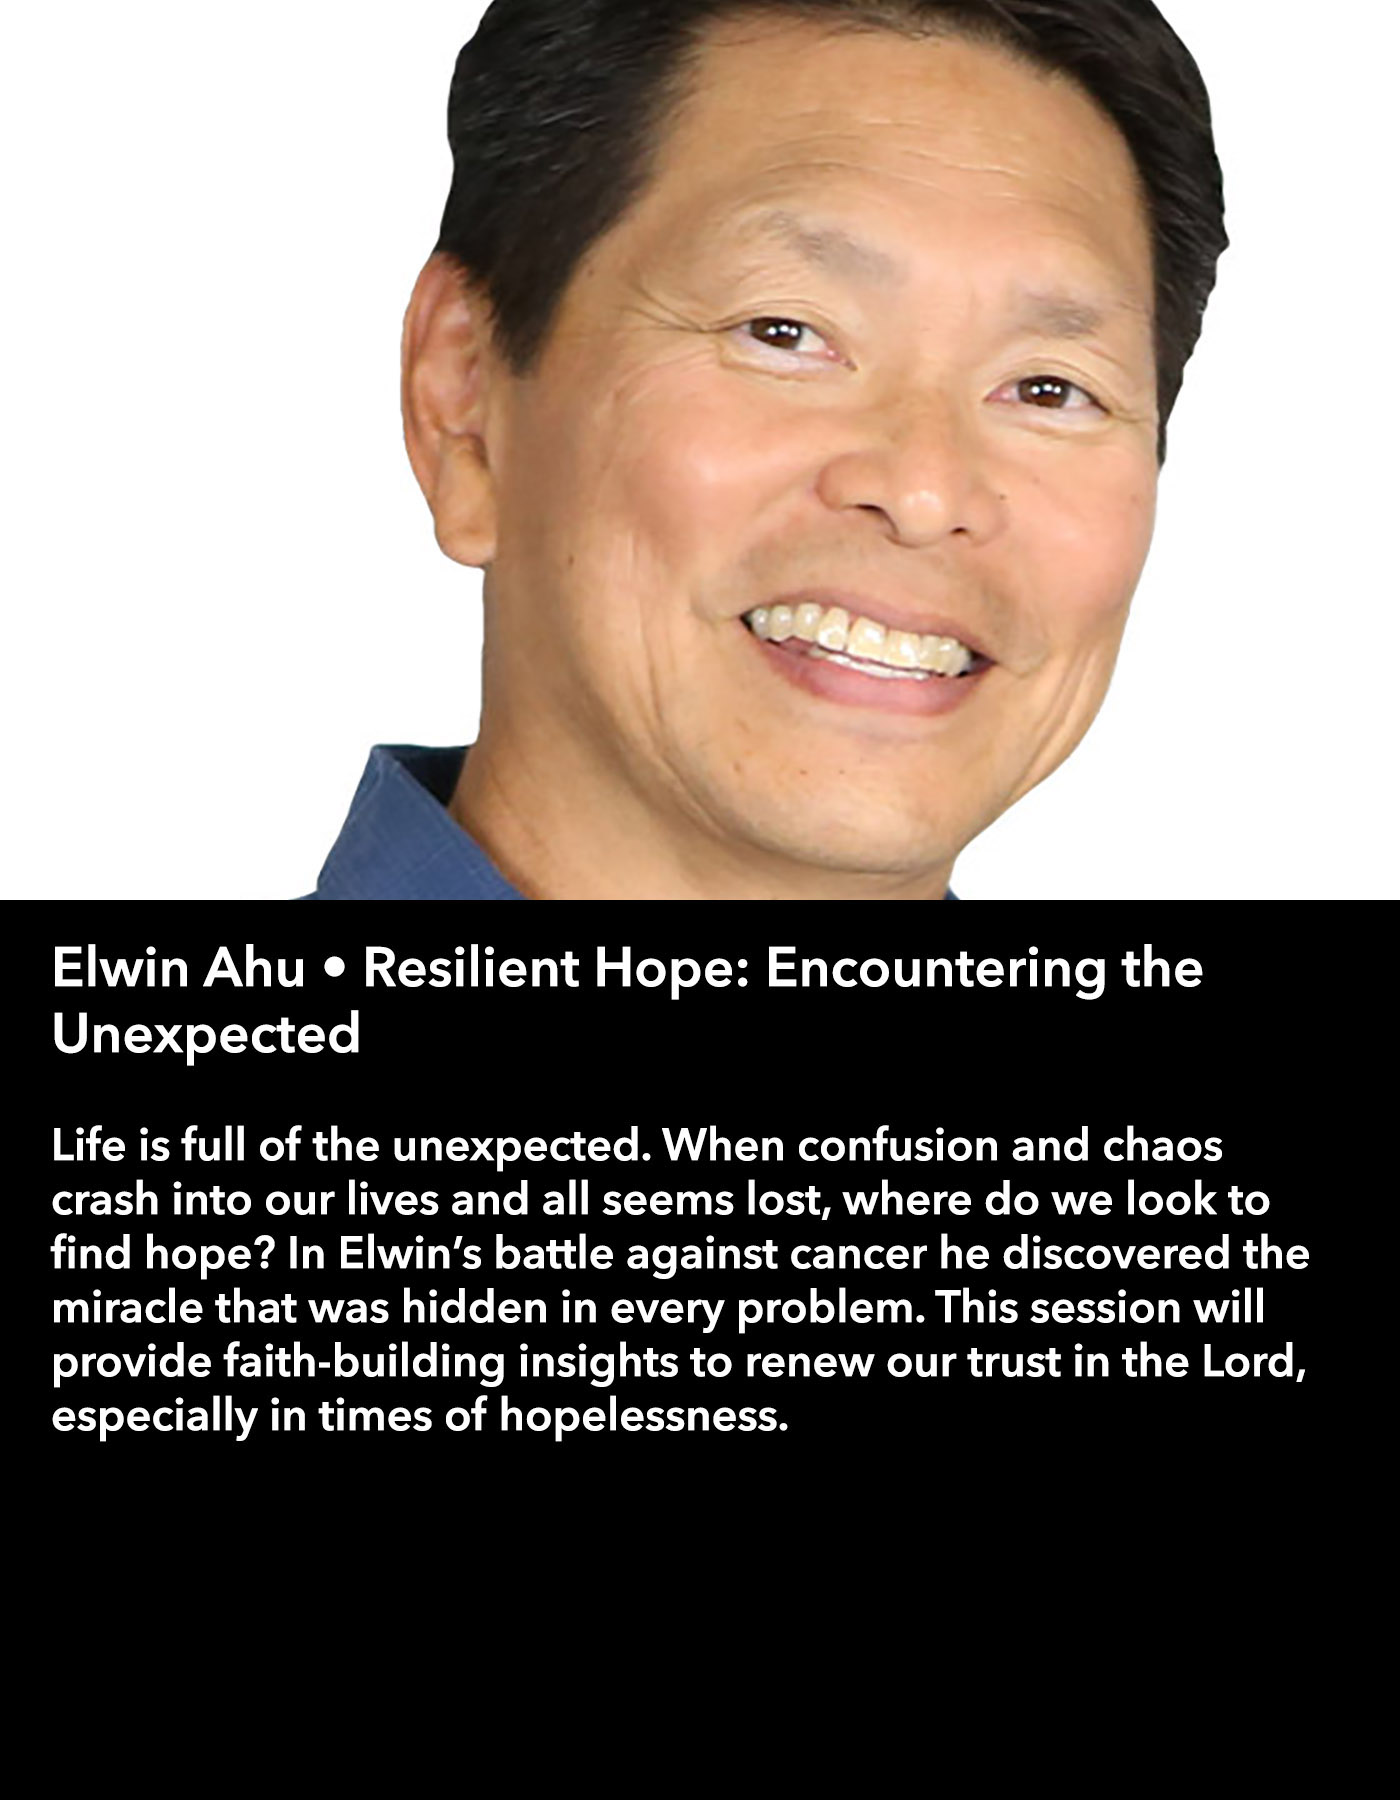 Elwin Ahu • Resilient Hope: Encountering the Unexpected • Saturday Morning, March 18 • 10:30 – 11:45 am